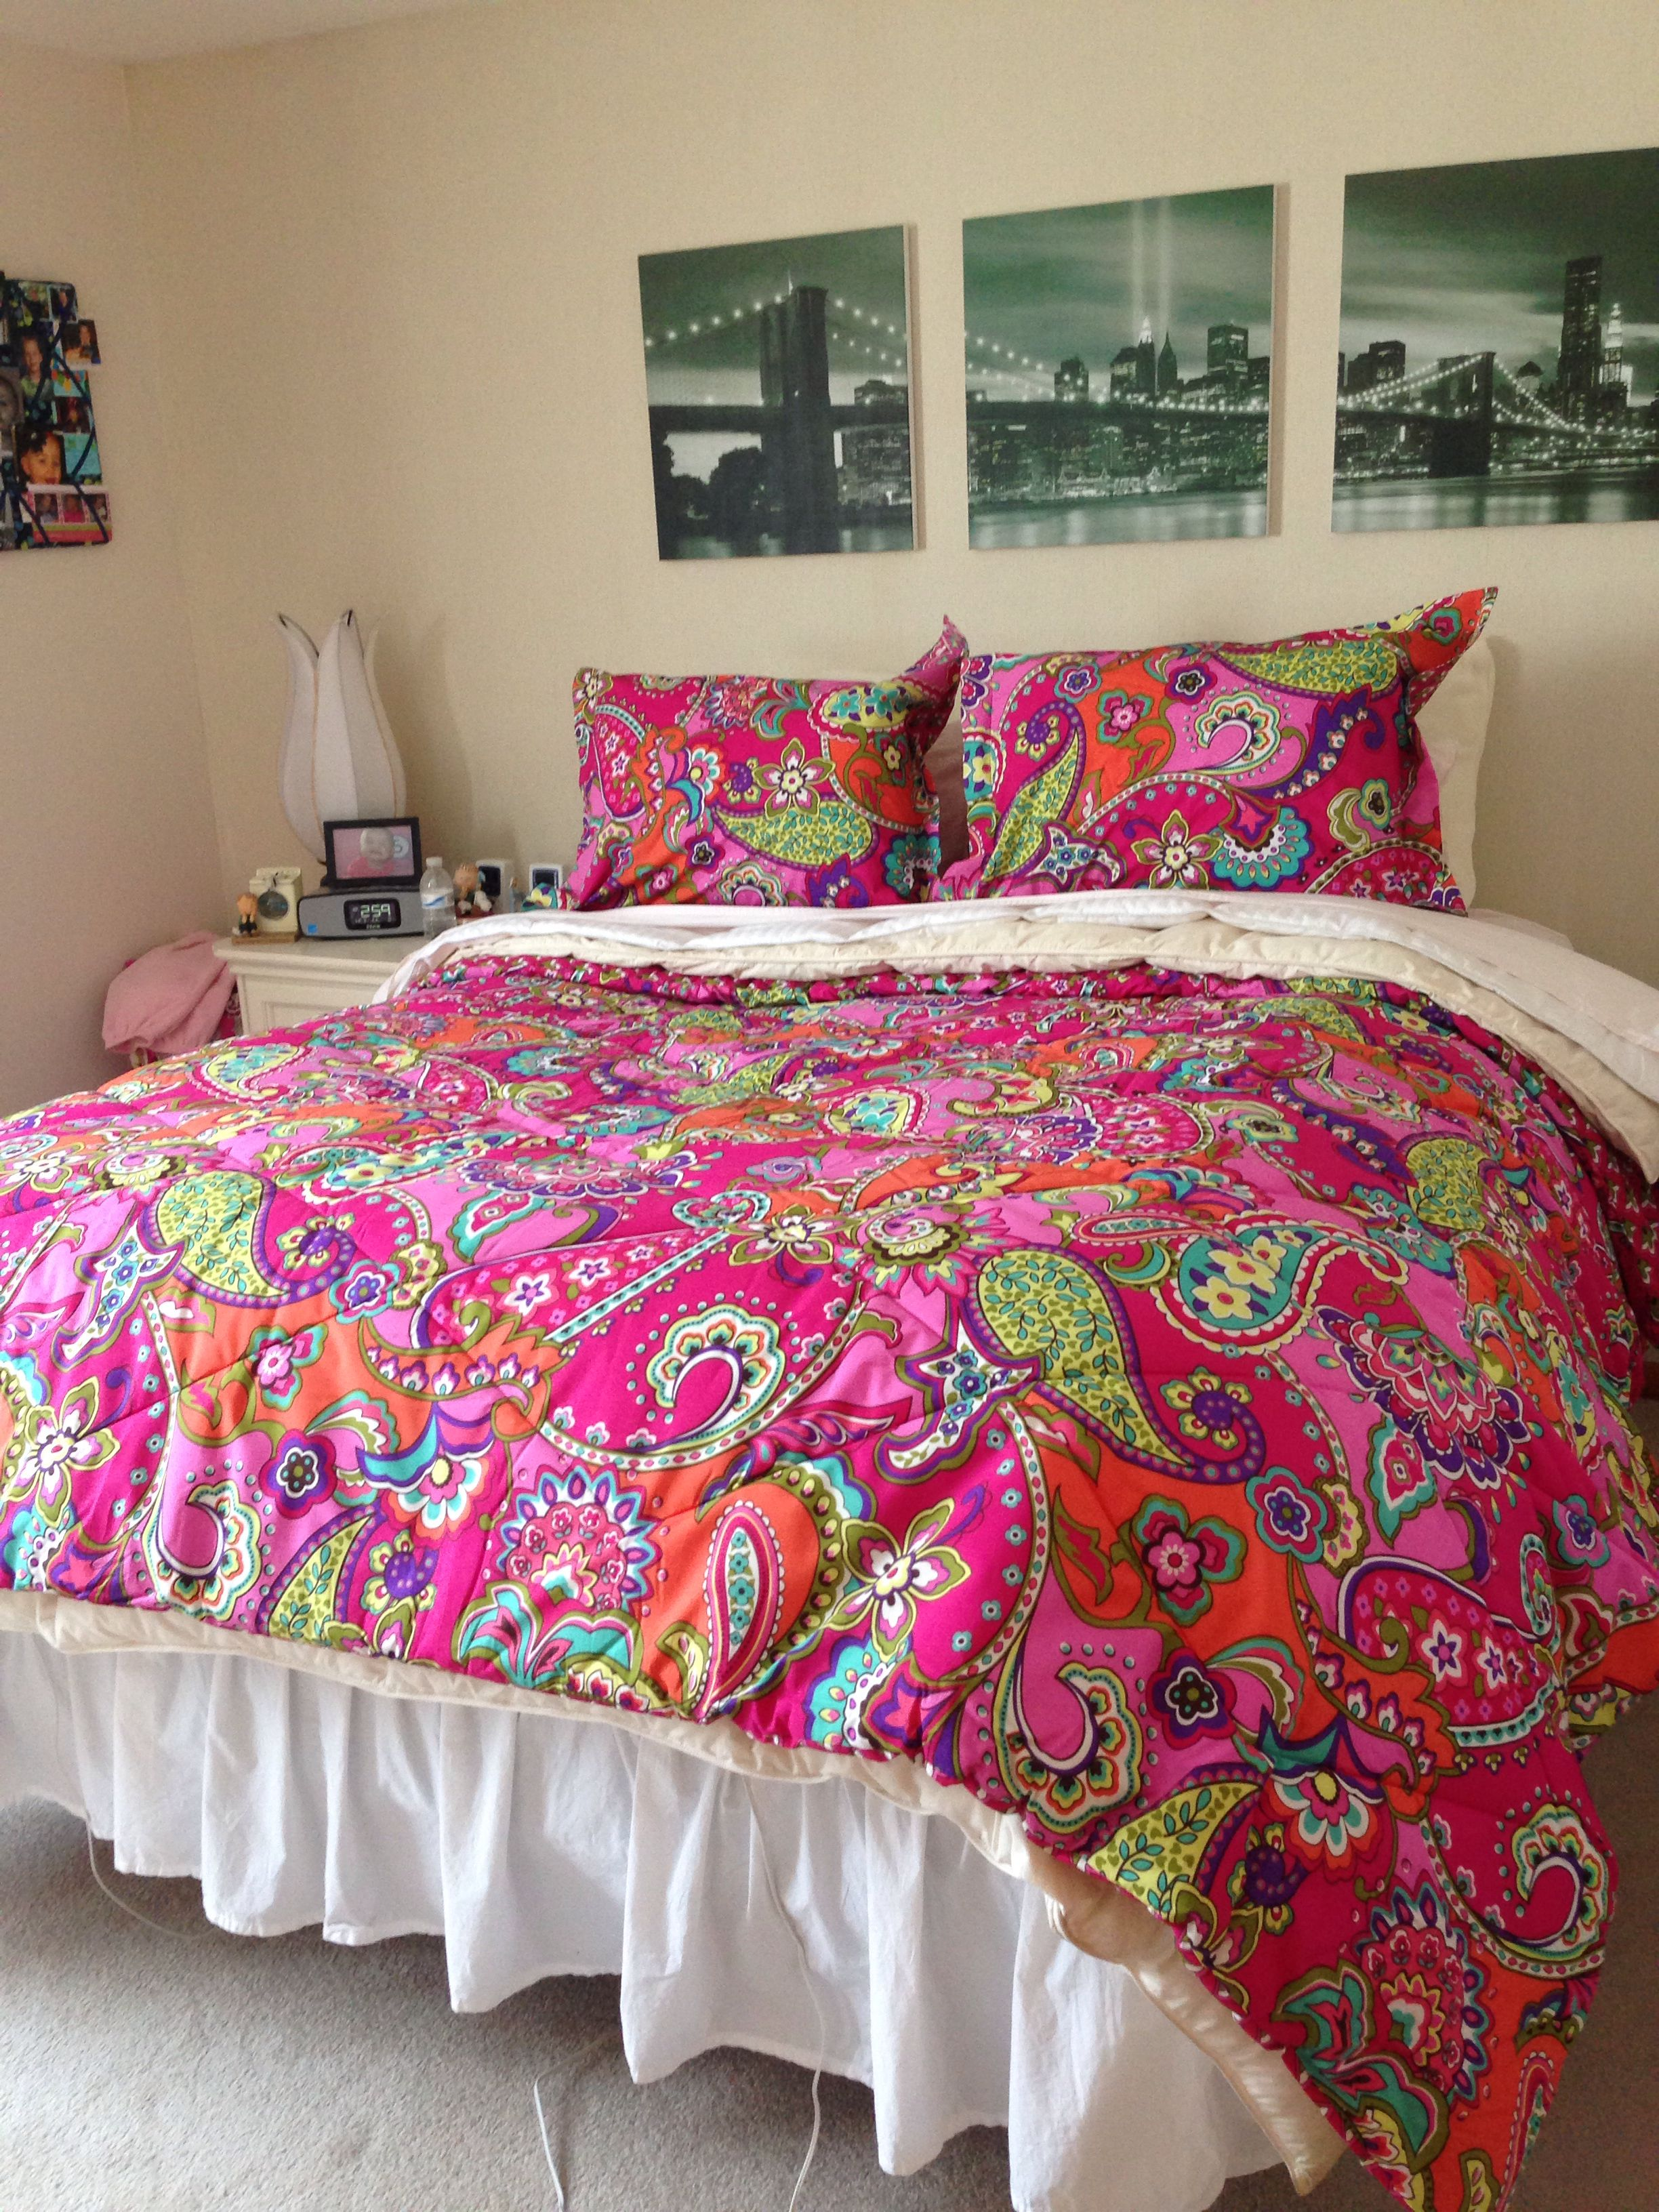 My Bedroom With The Pink Swirls Full Queen Comforter Set